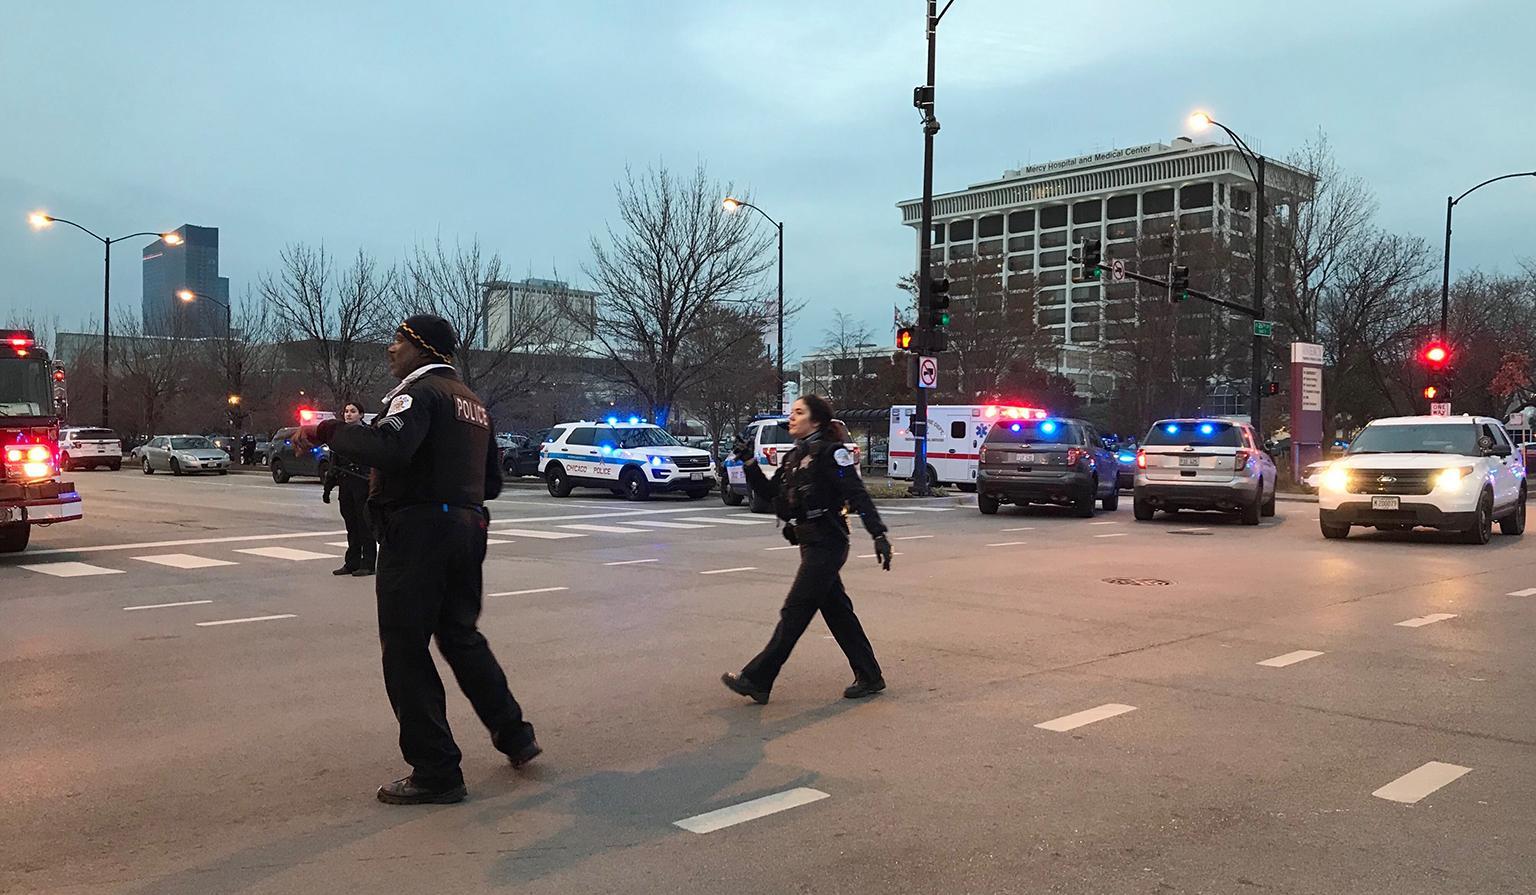 Chicago police officers walk outside Mercy Hospital on the city's Near South Side where authorities say a shooting at the hospital has wounded multiple people, including a suspect and a police officer on Monday, Nov. 19, 2018. (AP Photo / Amanda Seitz)